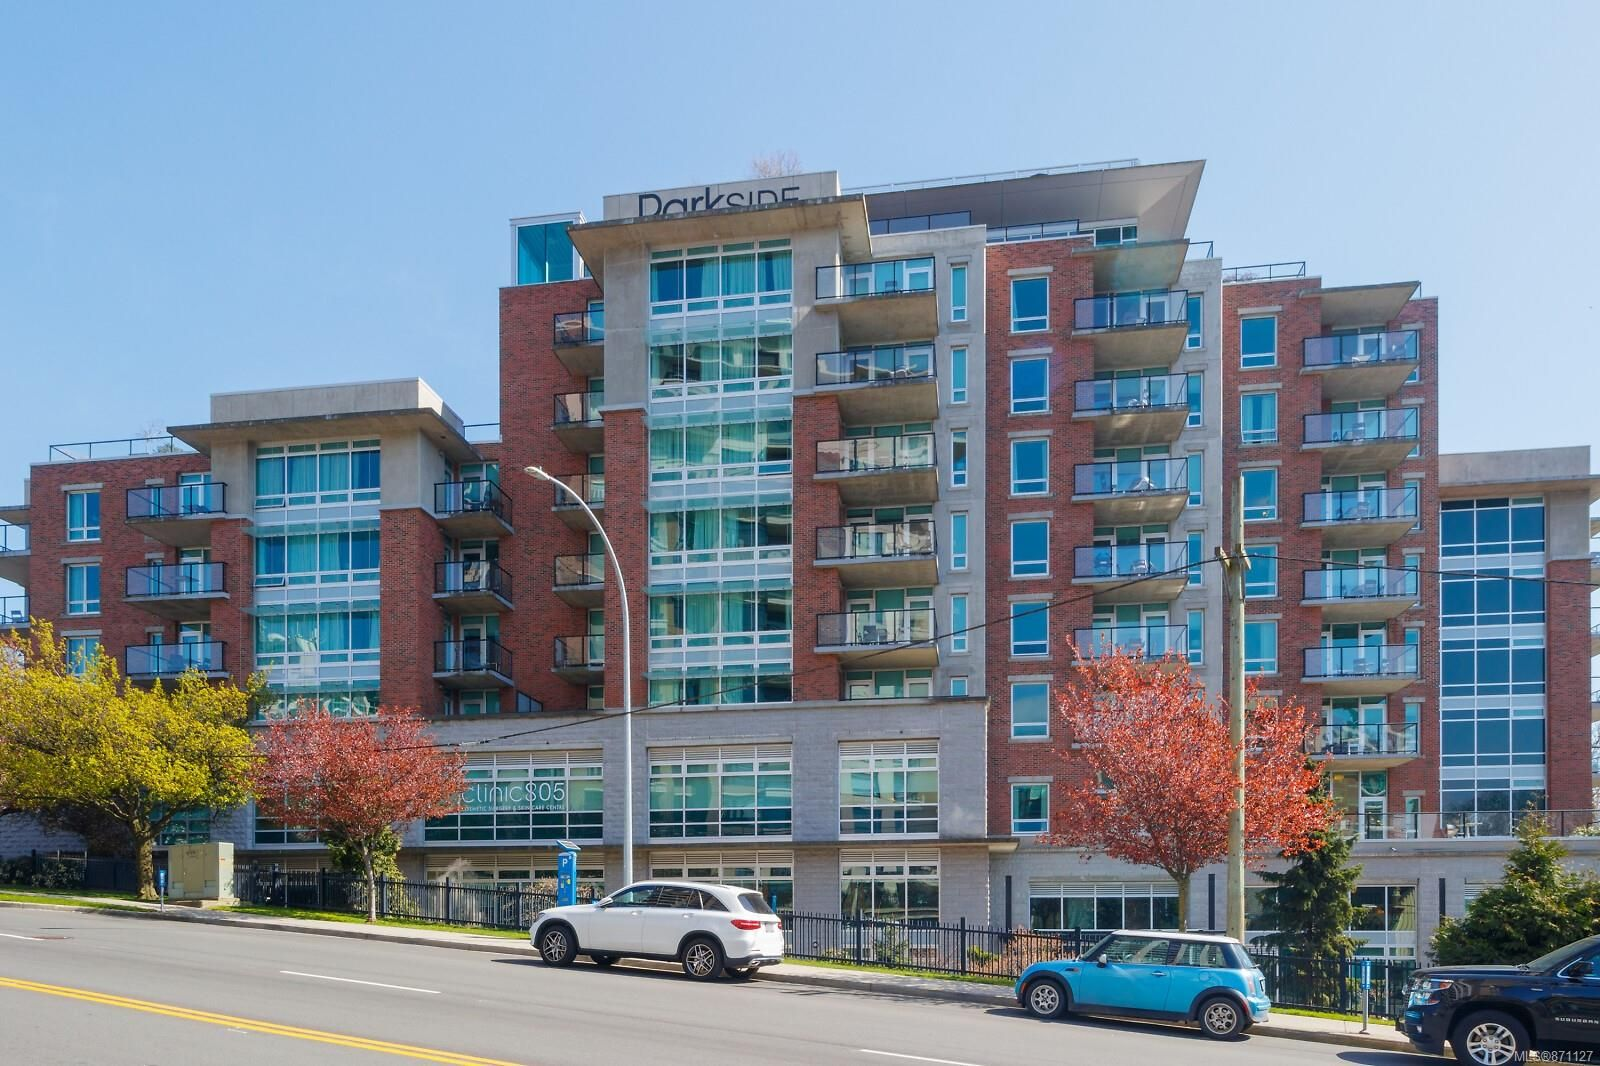 Main Photo: A503 810 Humboldt St in : Vi Downtown Condo for sale (Victoria)  : MLS®# 871127